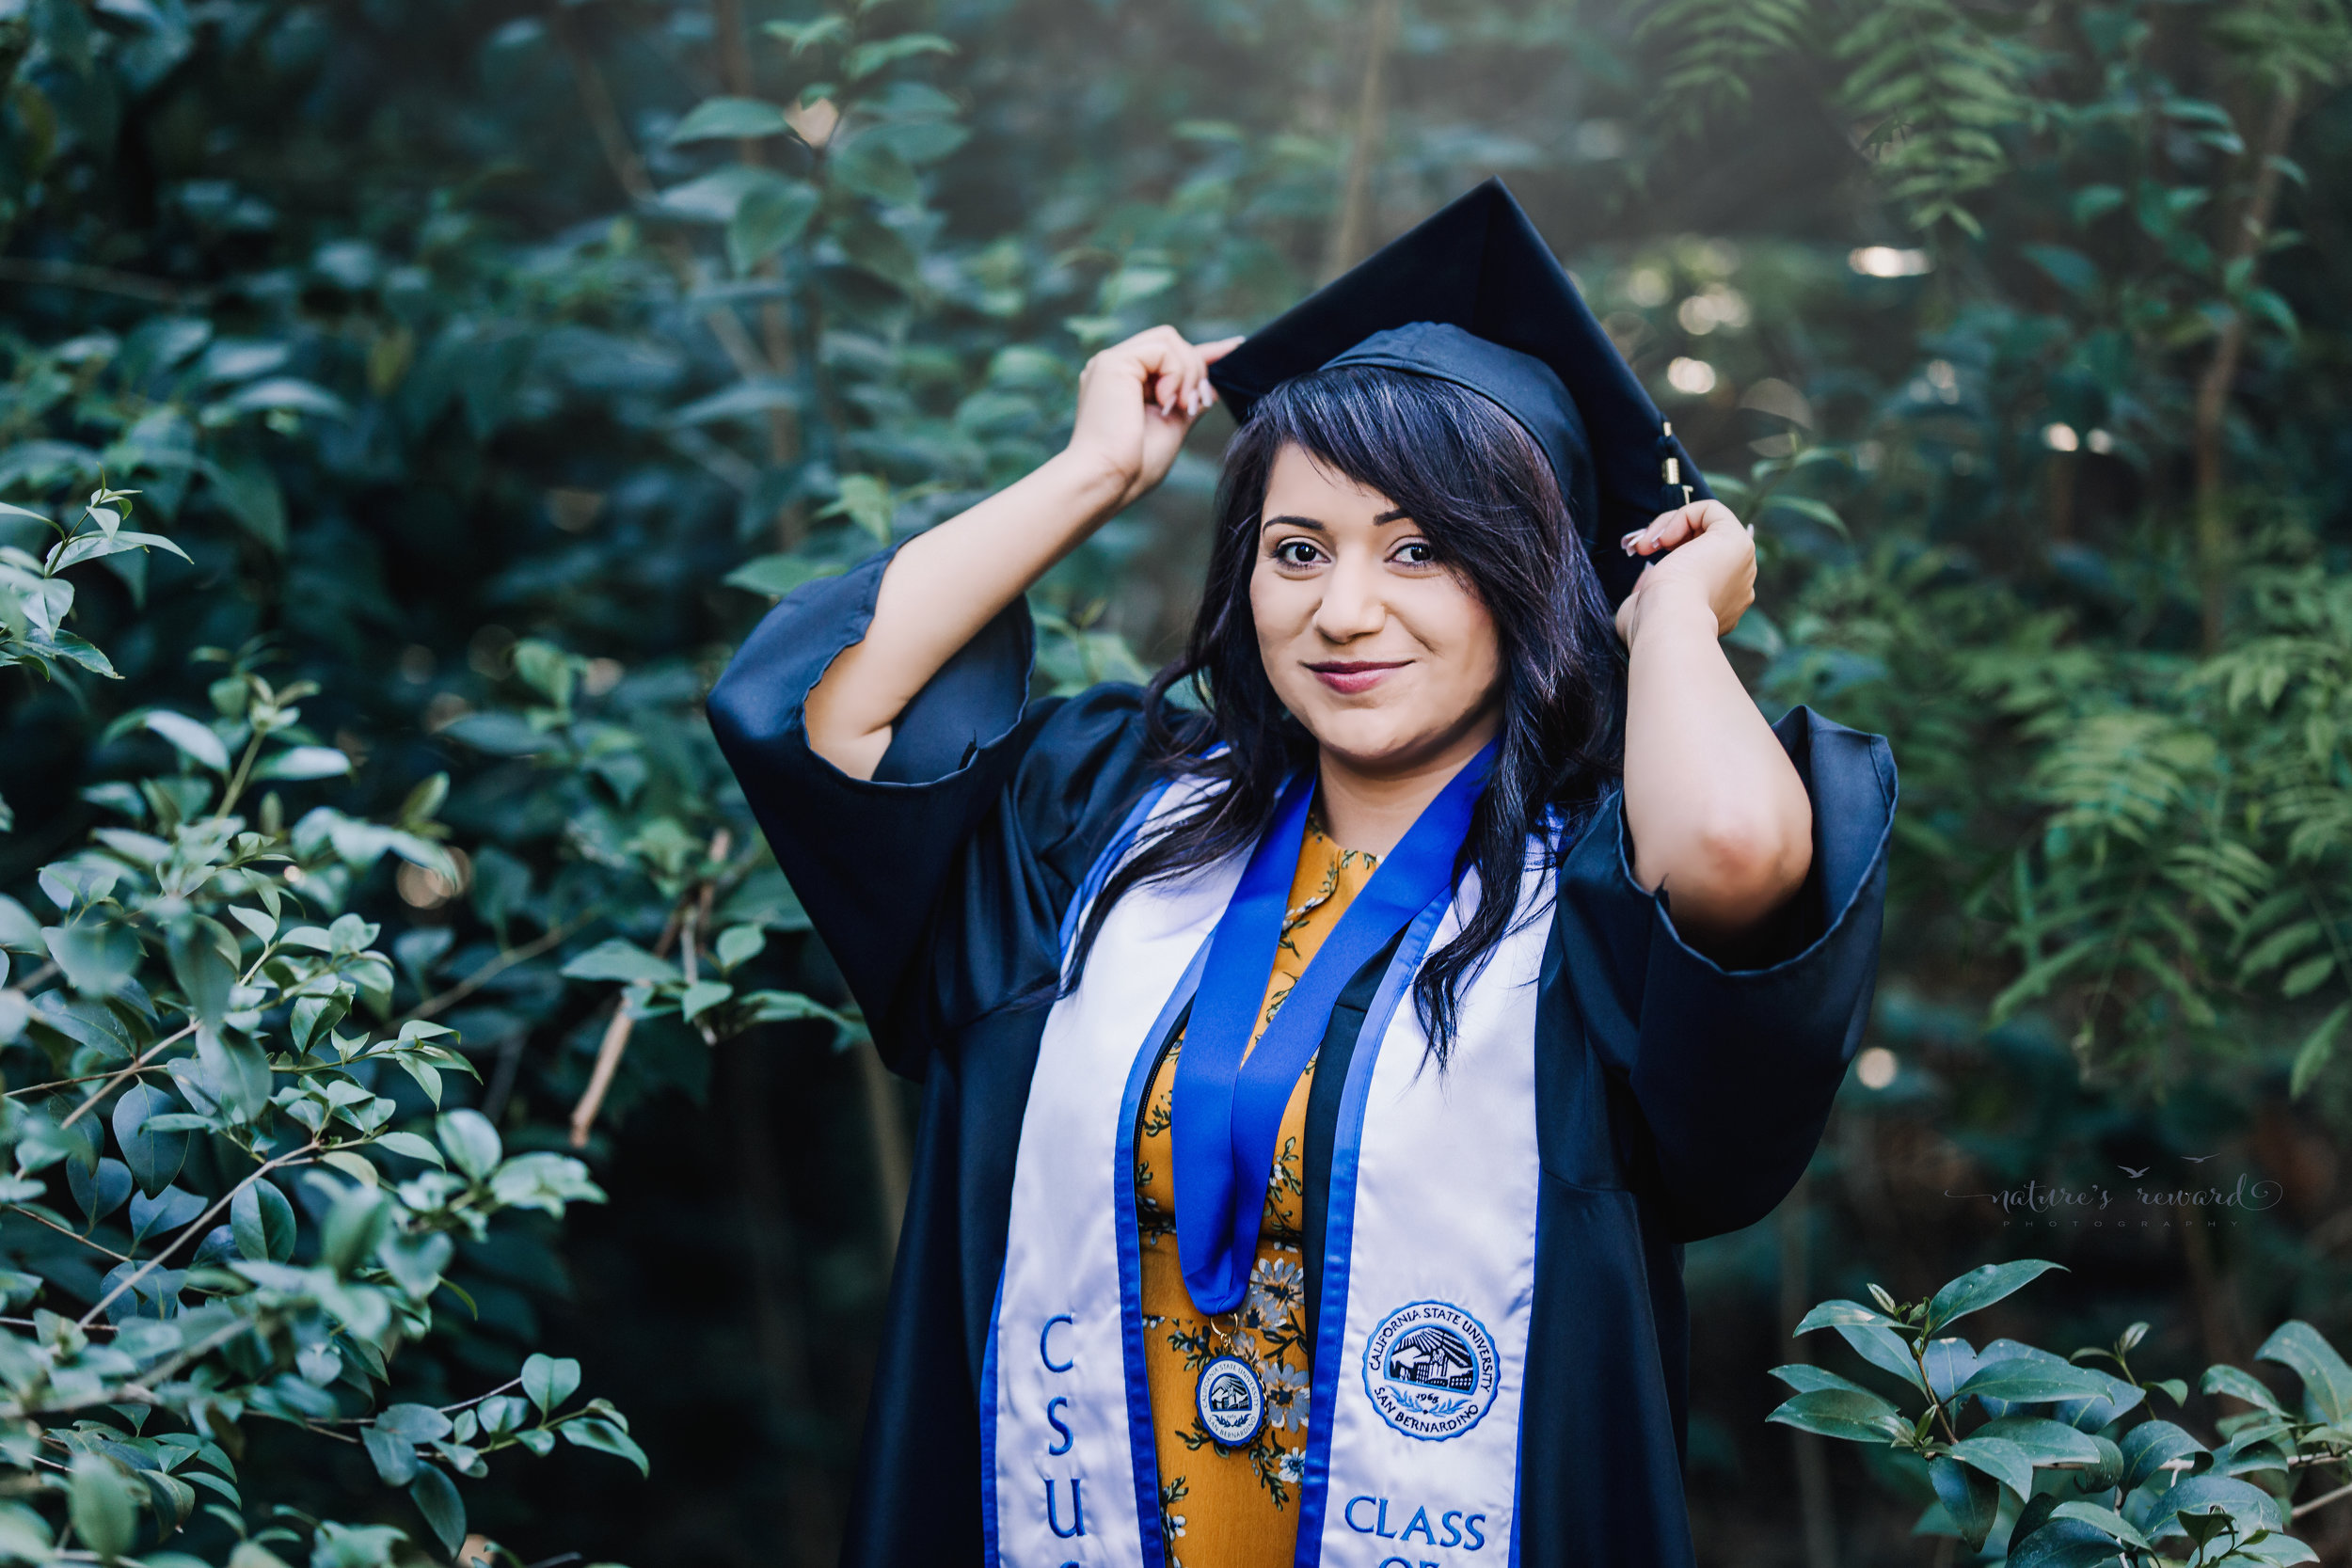 Class of 2018, California State University, San Bernardino Graduate wearing a yellow dress and cap and gown surrounded by the lush green of a park in Redlands, California in this Senior Portrait by Nature's Reward Photography.